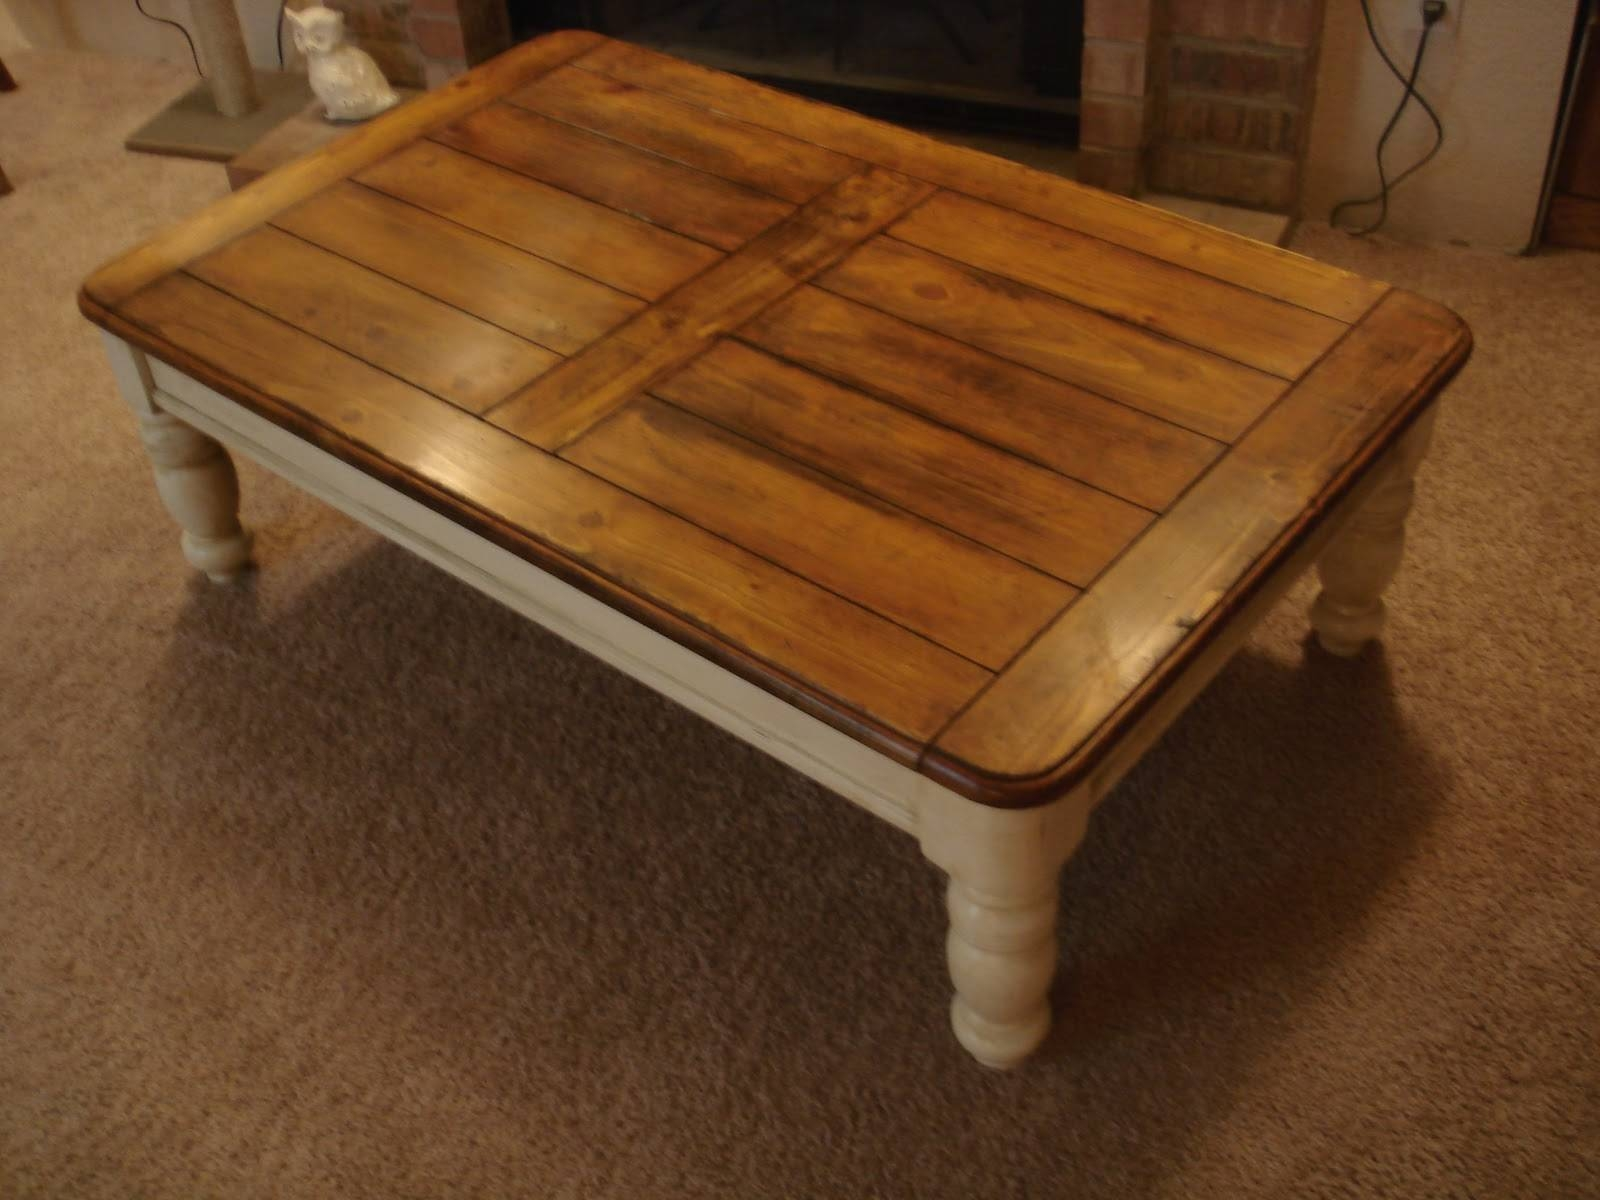 Awesome Distressed Square Coffee Table Large Coffee Tables within Large Square Coffee Tables (Image 1 of 30)